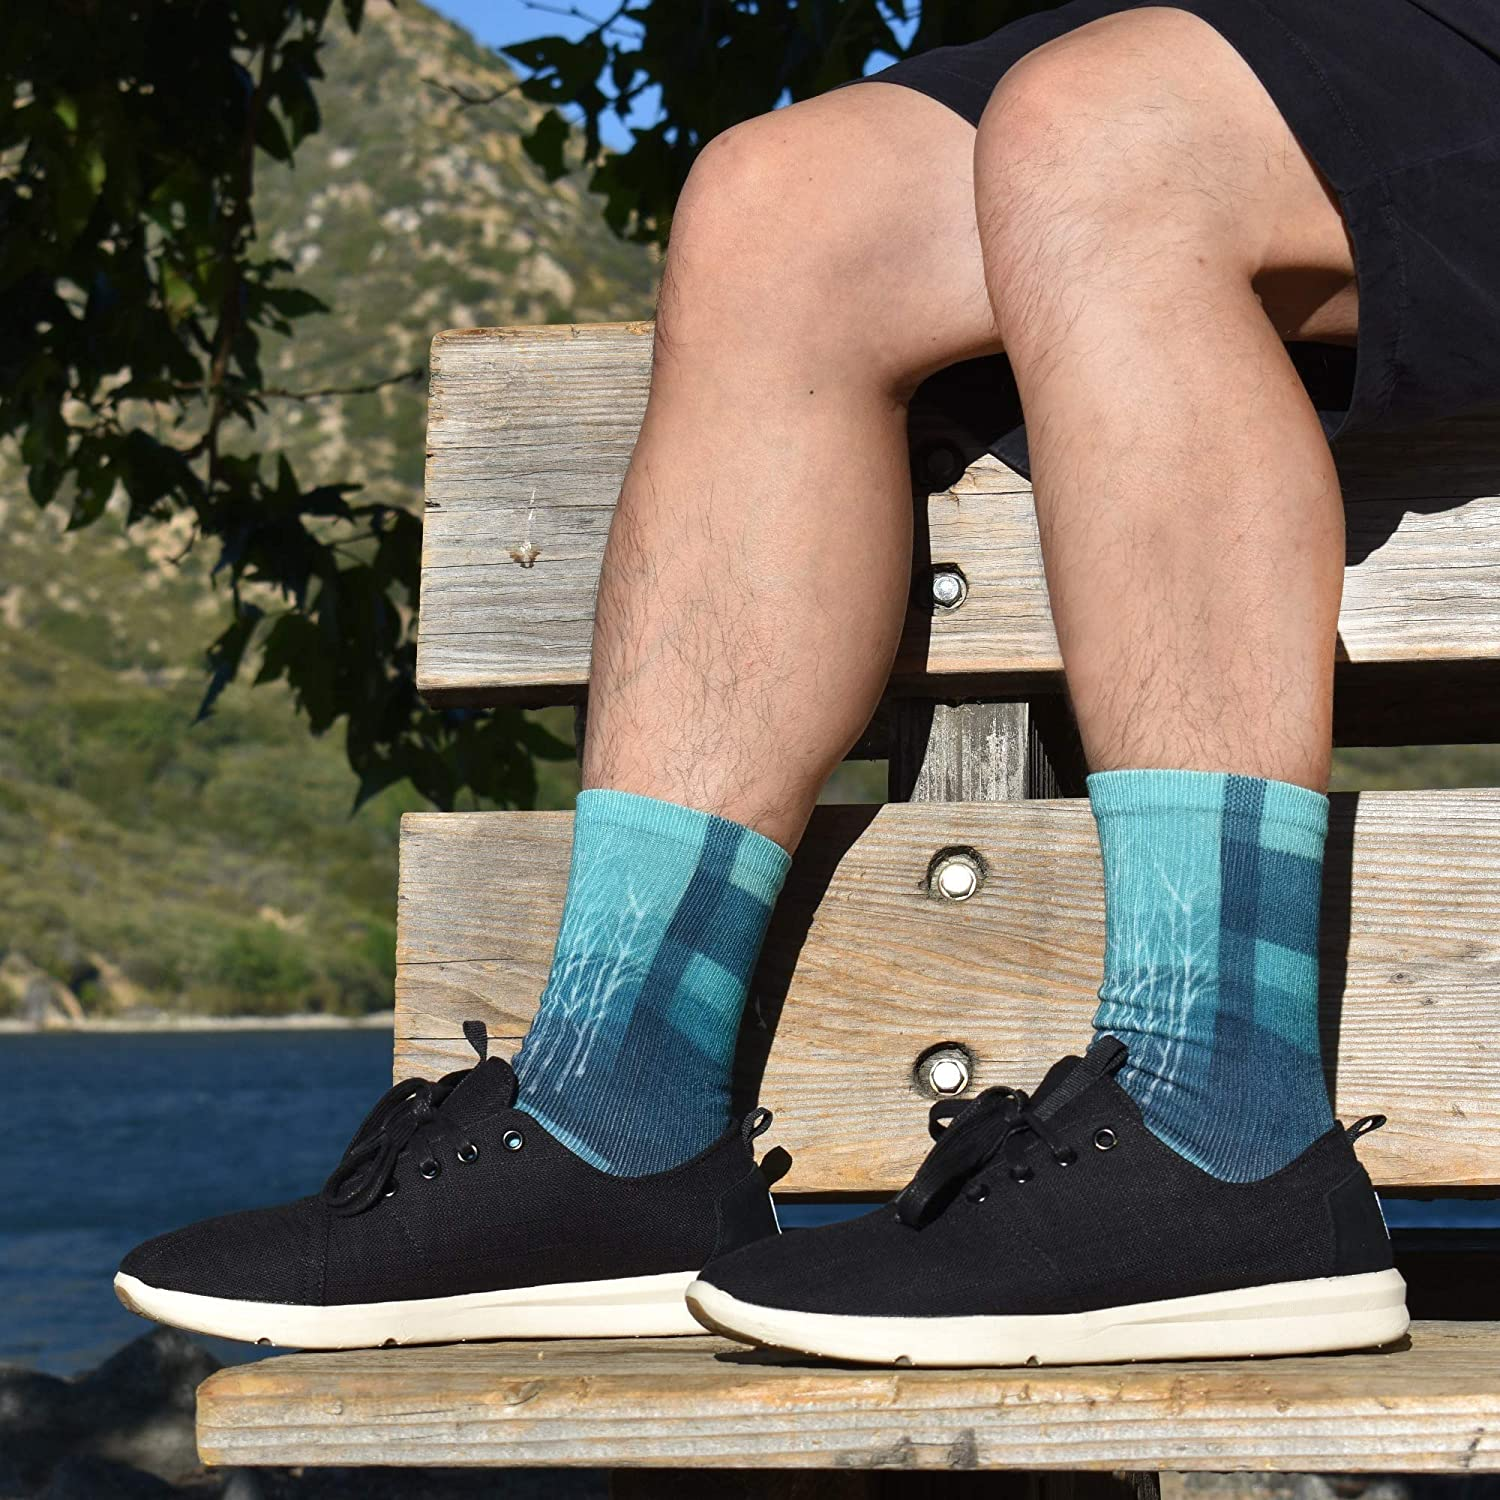 APRIME ECO-CAFE Crew Cushion Socks Made from Coffee Grounds Featured Odor Control /& Fast Drying /& UV Protection